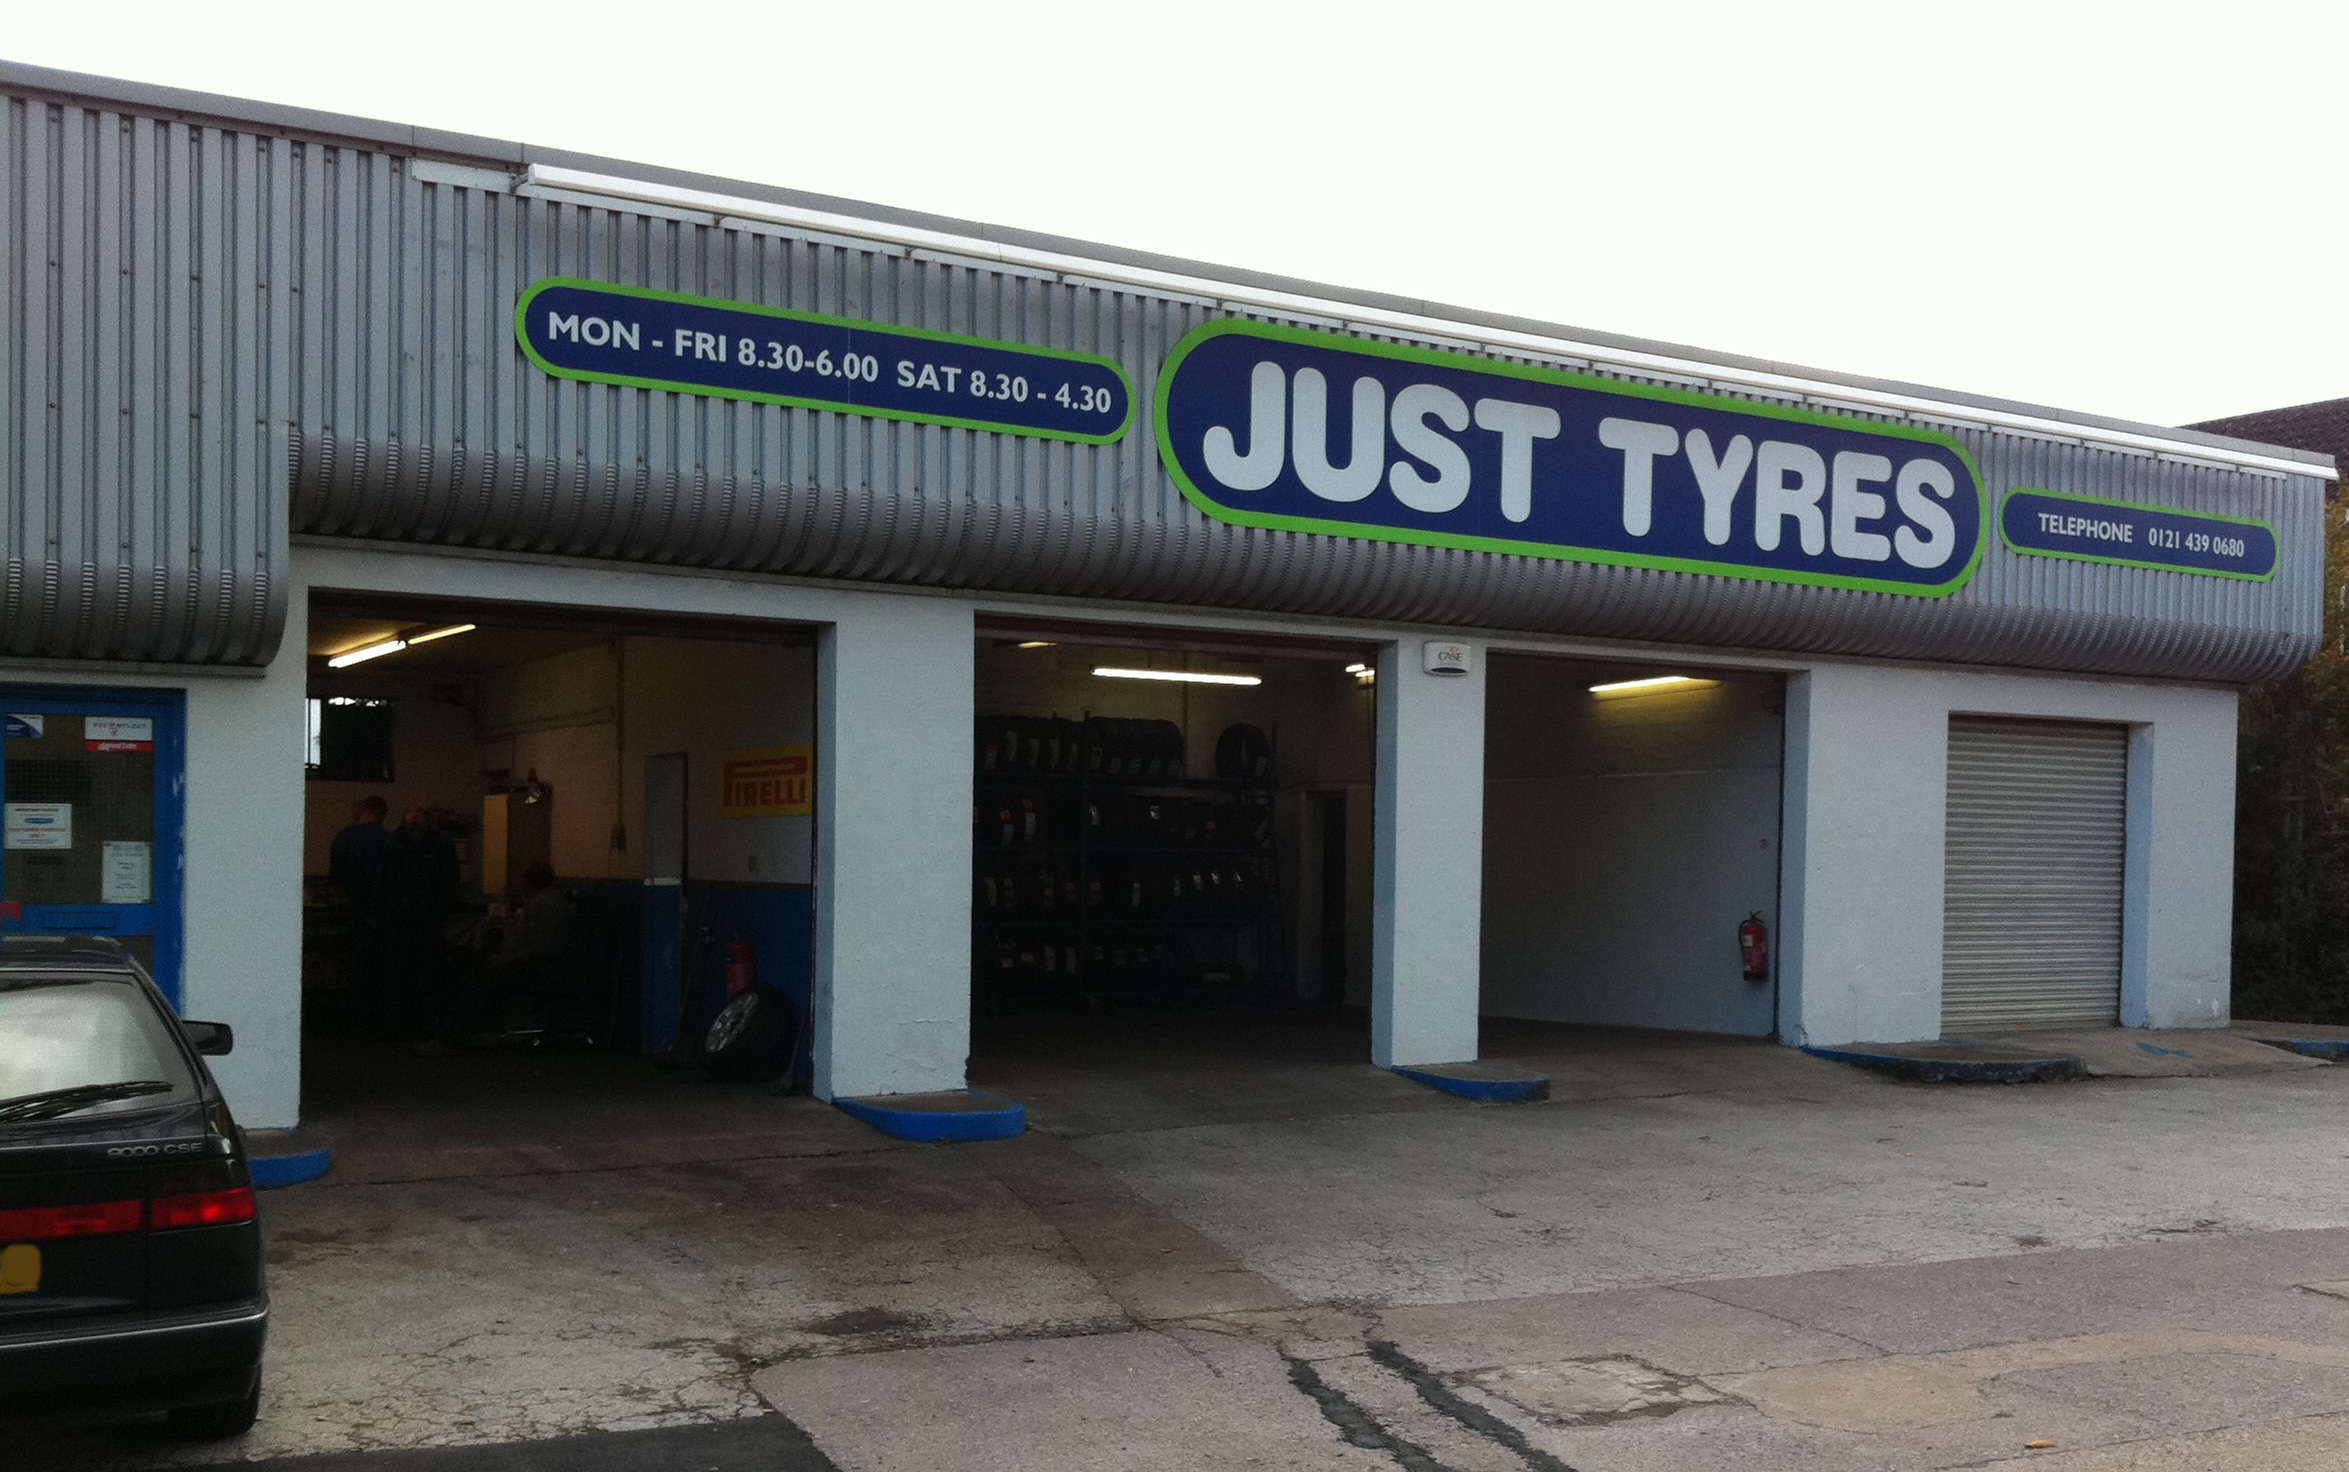 Just Tyres in Solihull